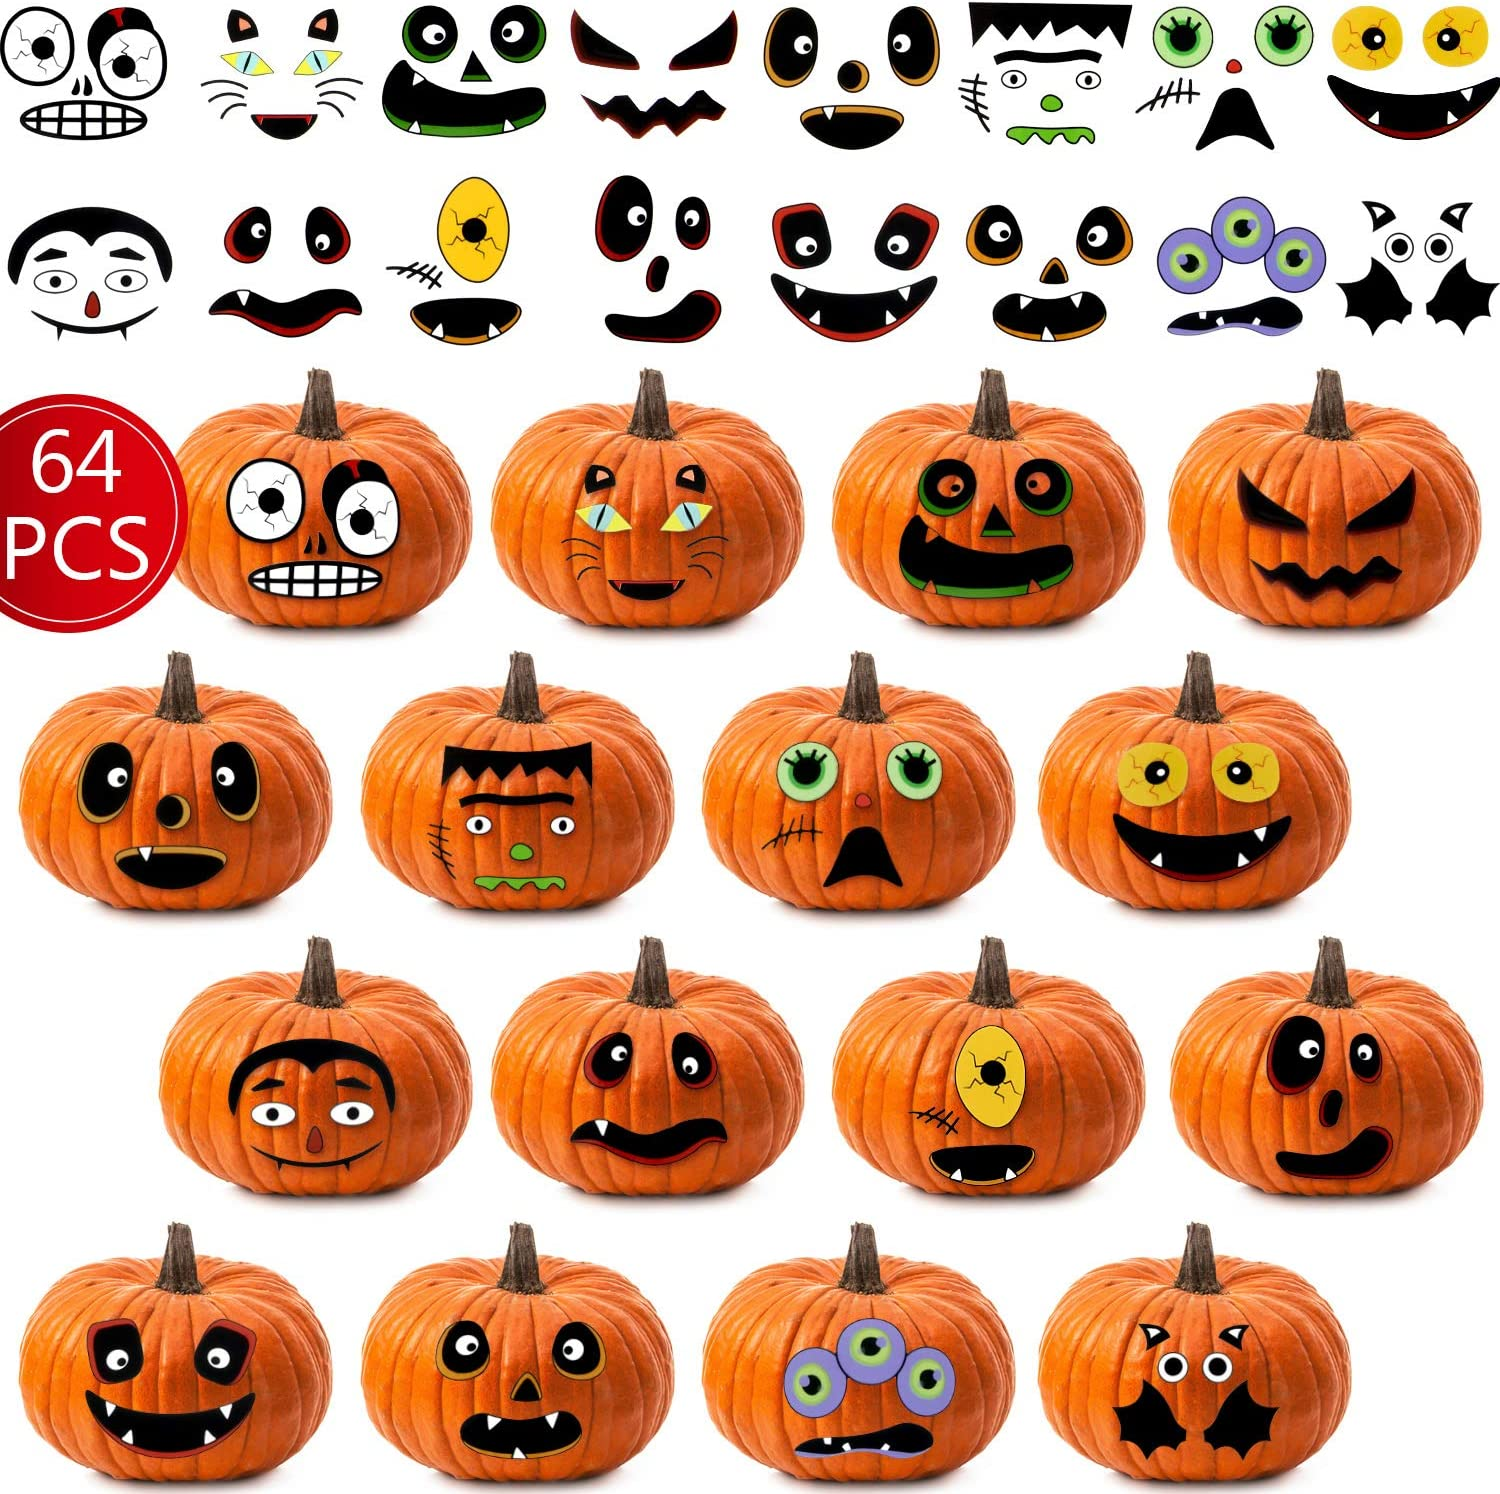 60 Pieces Halloween Pumpkin Stickers Jack O Lantern Pumpkin Decorating Face Stickers for Halloween Trick or Treat Party Favors Decorations